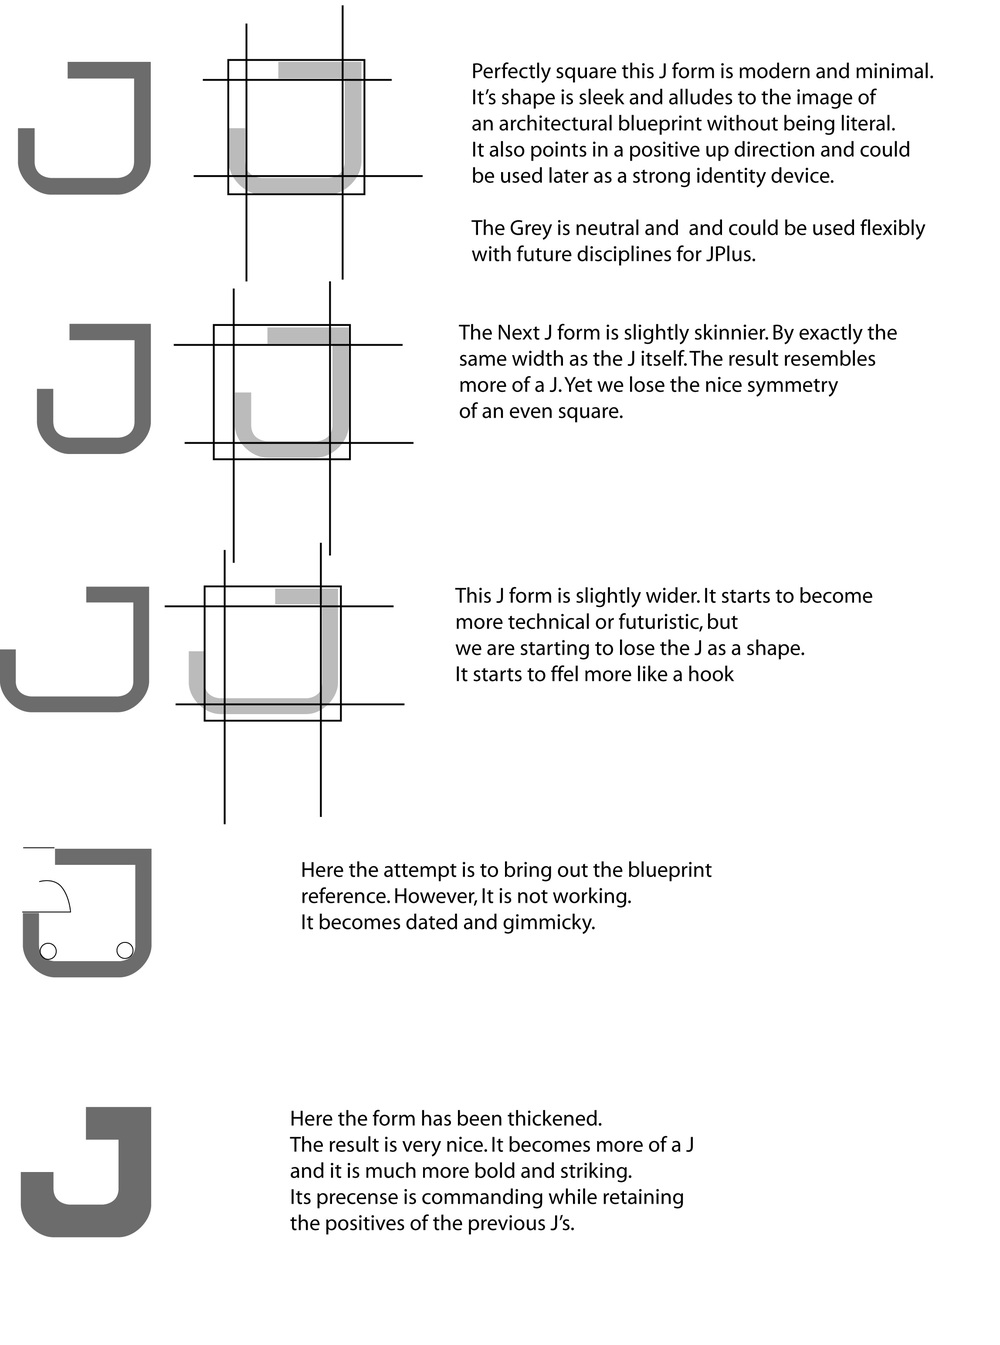 This is an excerpt from the case study notes that I was submitting to the client. I had diverged away from their old logo look and started to search for a more minimal way of expressing architecture within the mark. There was something about the J that reminded me of a blueprint and also said something about spaces.  Building architecture is creating a space that people occupy. The square form of the J seemed to signify a space that could be occupied.